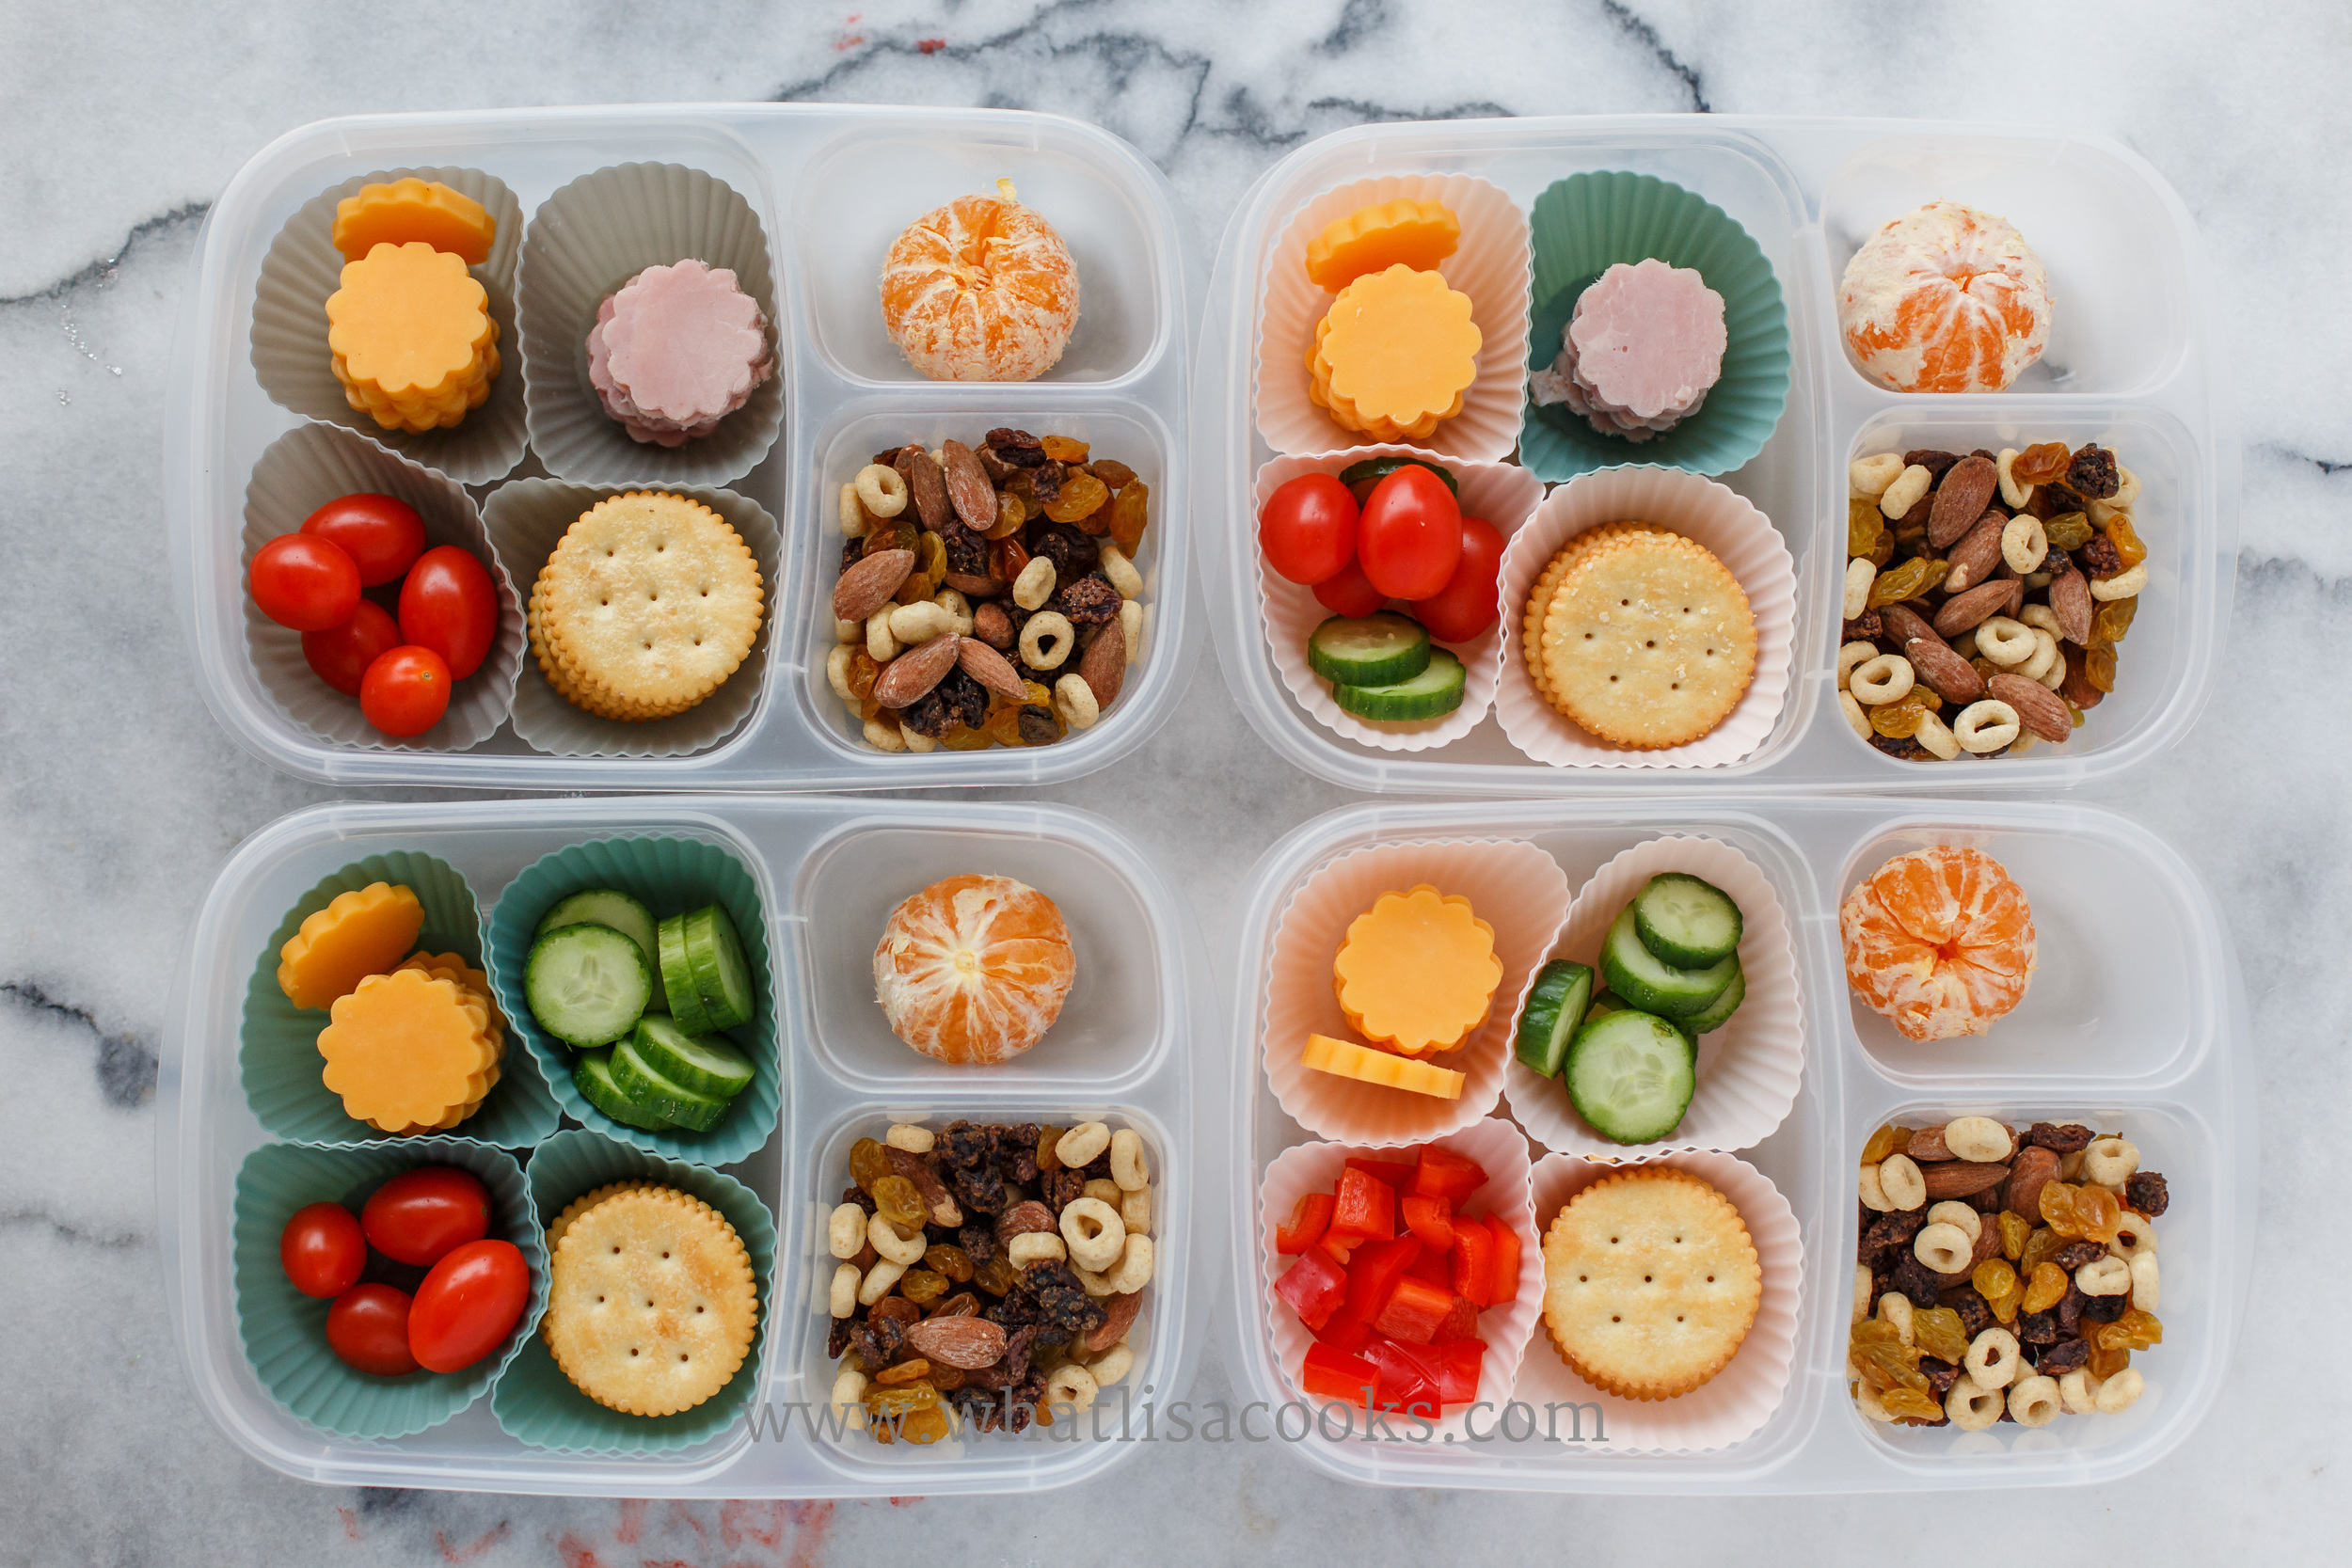 Lunchable: crackers, cheese, tomatoes, orange, two have ham, two have cucumbers, one has peppers, and they have a little trail mix on the side of almonds, raisins, and cheerios.